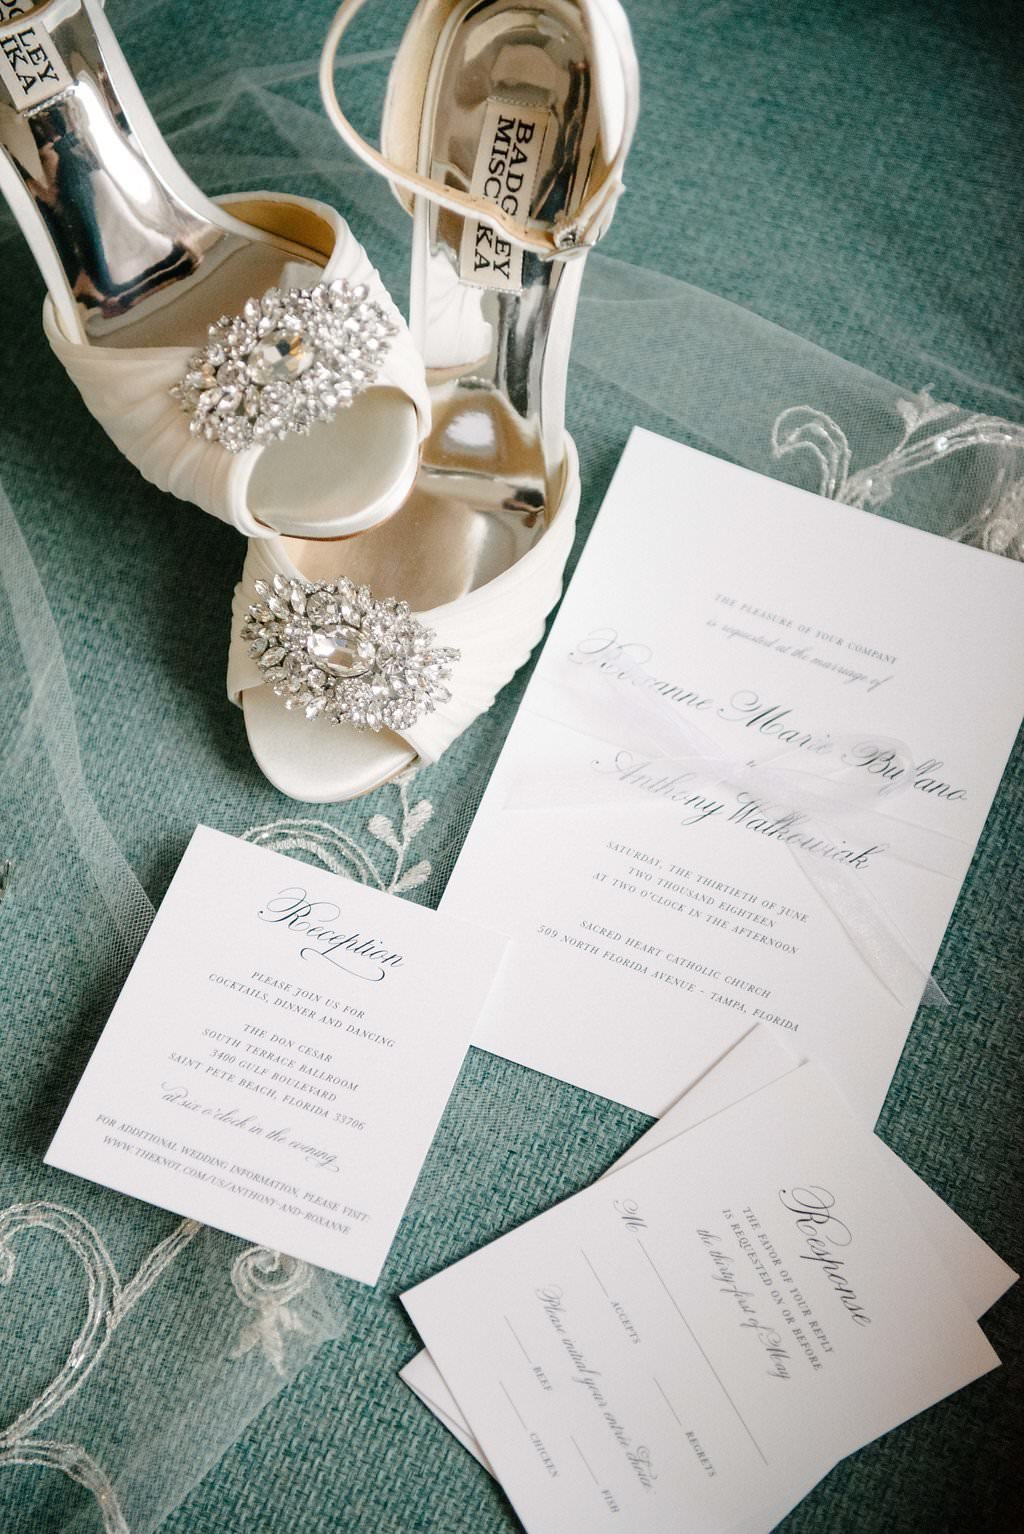 wedding invitations, veil and shoes